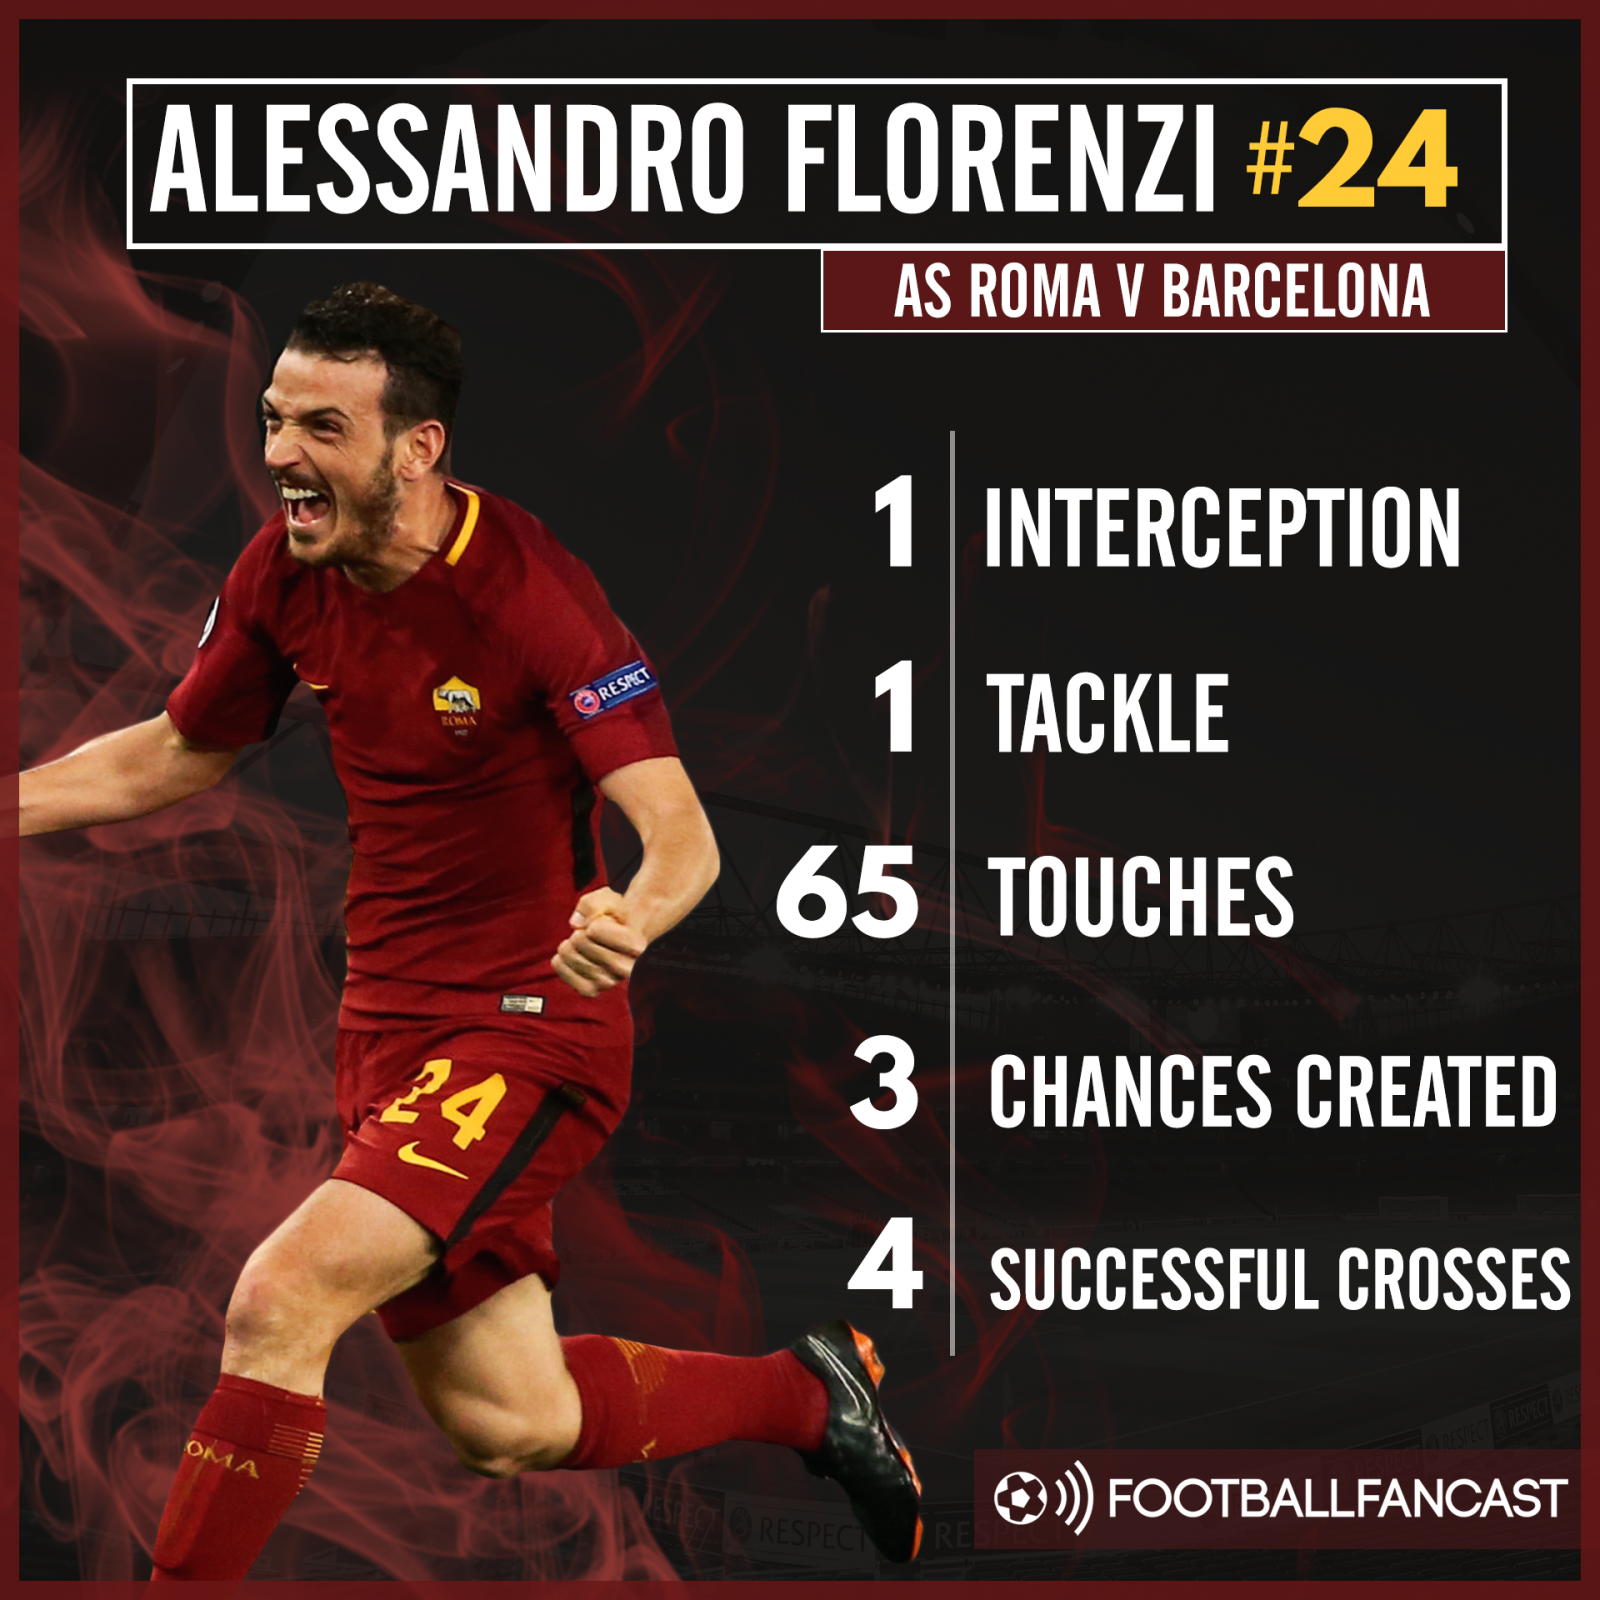 Alessandro Florenzi's stats from Roma's 3-0 win over Barcelona